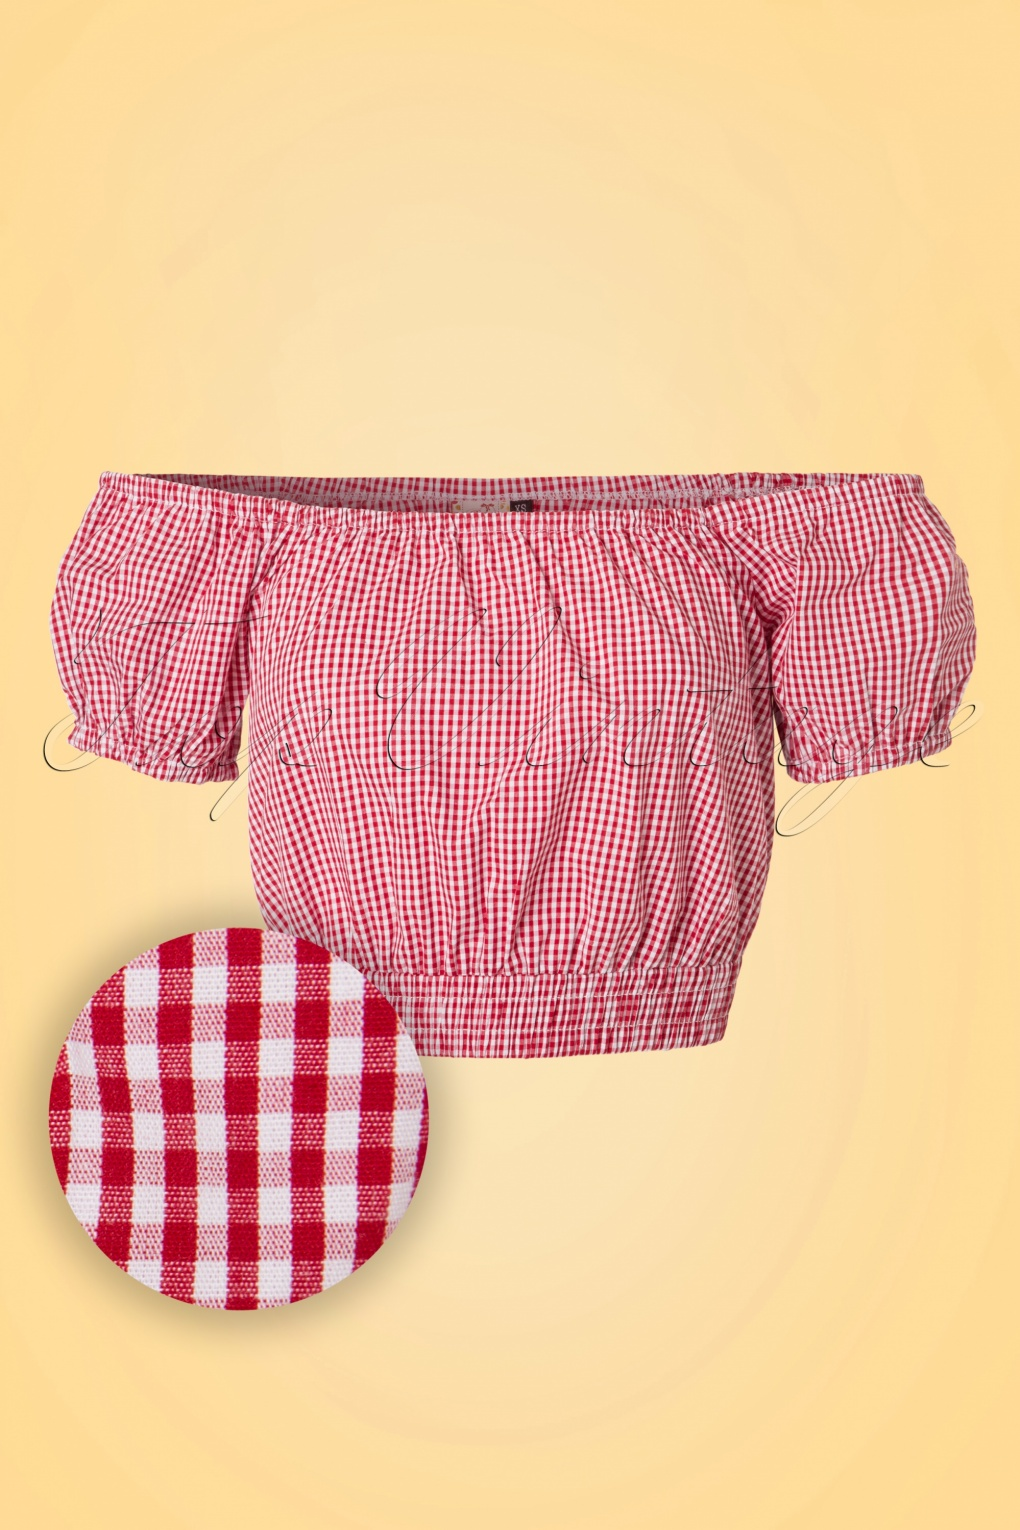 1940s Blouses, Shirts and Tops Fashion History 50s All Mine Gingham Top in Red £26.02 AT vintagedancer.com